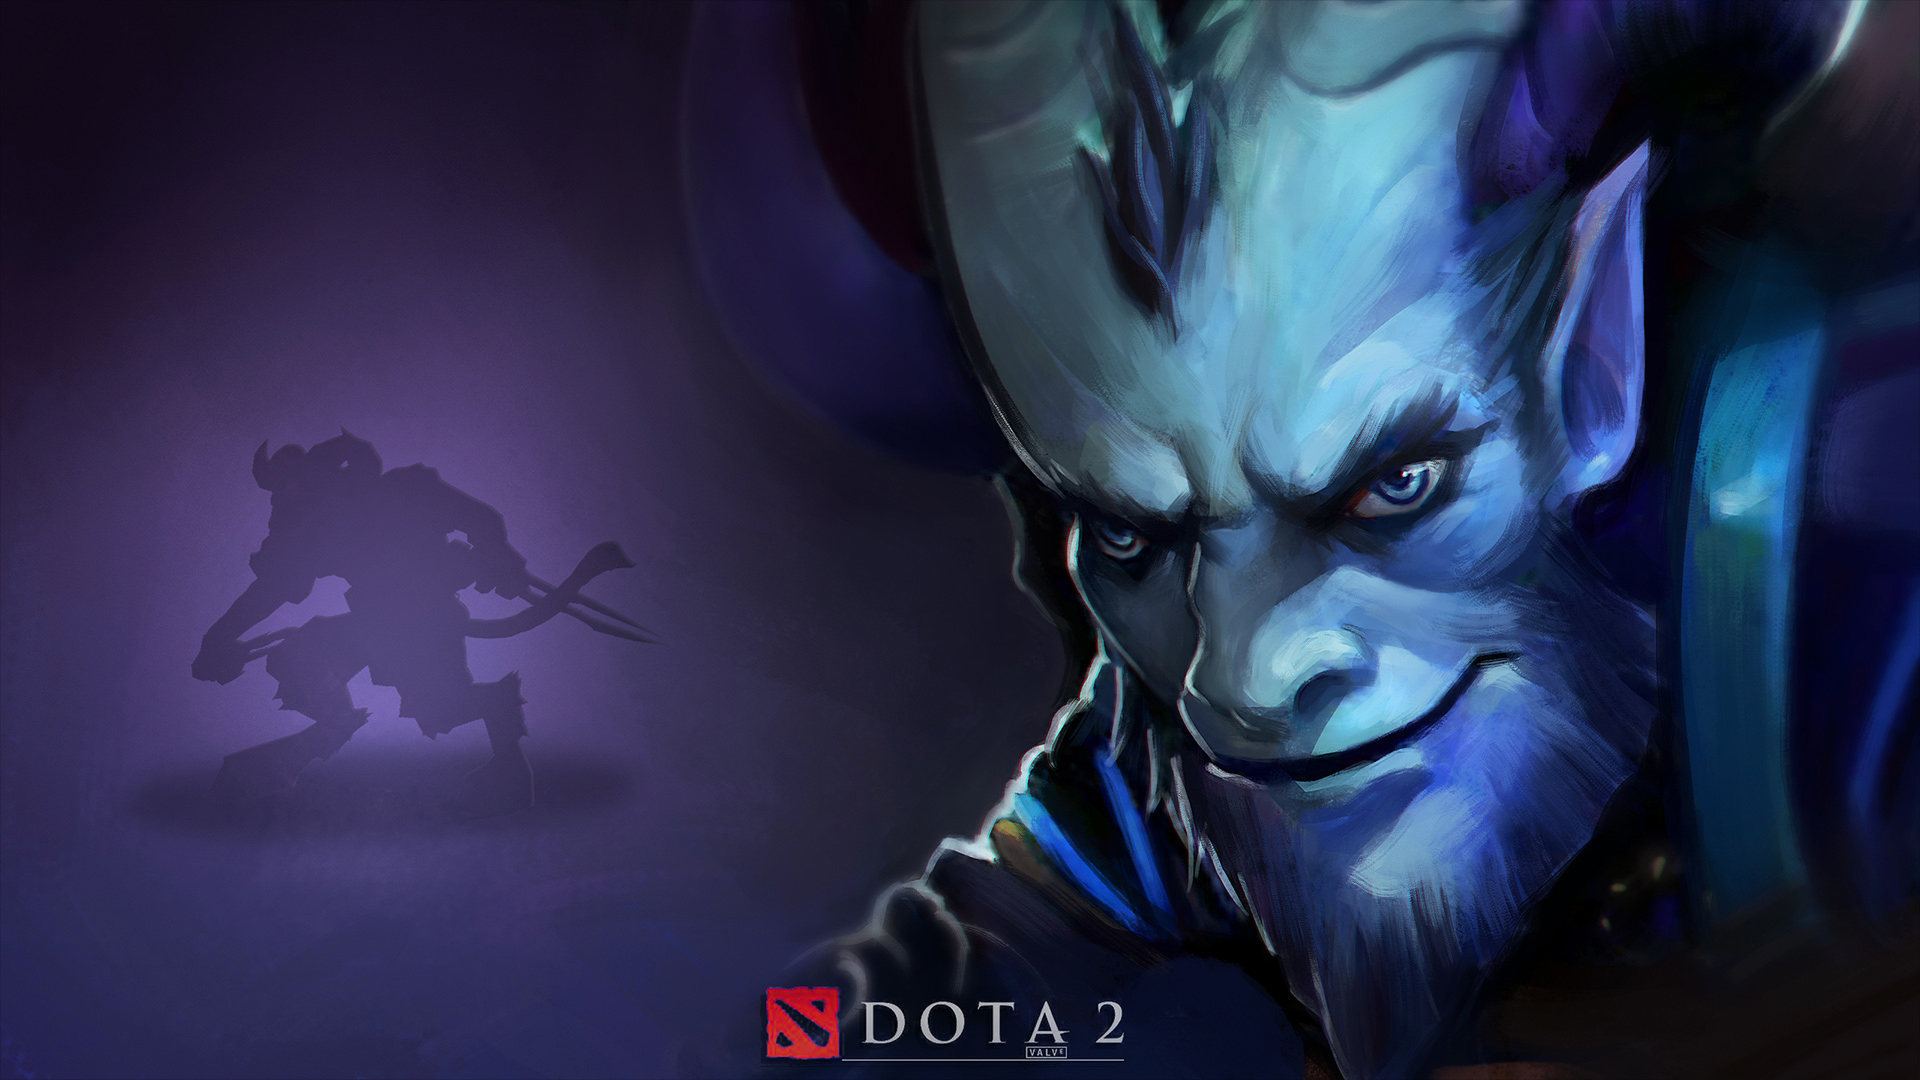 Riki wallpapers Dota 2 Full HD download valve